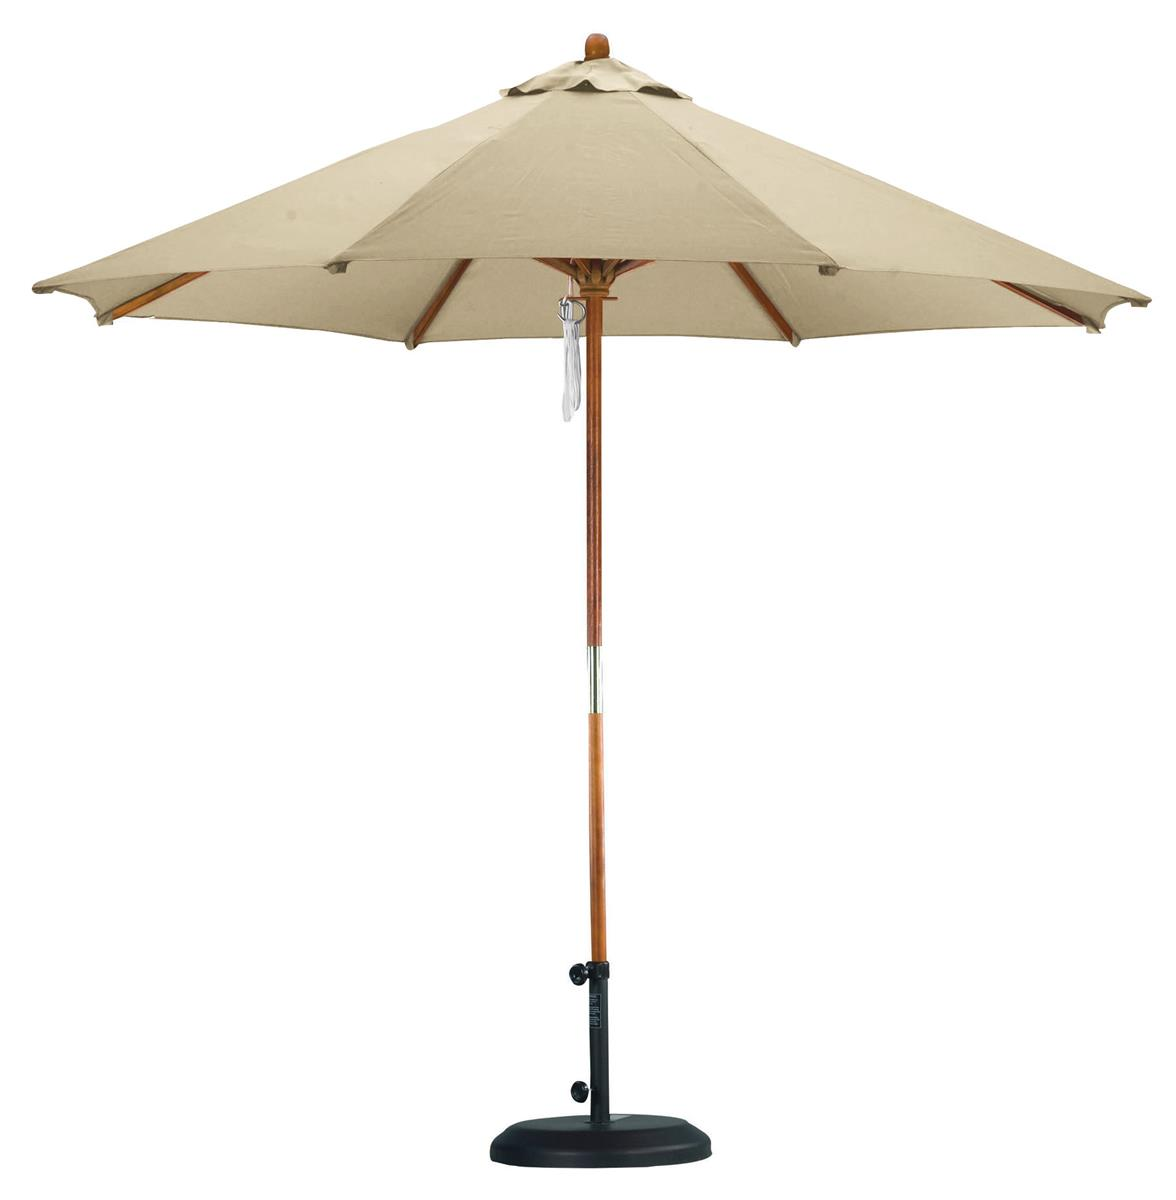 9 39 Market Umbrella In Antique Beige For Outdoor Use